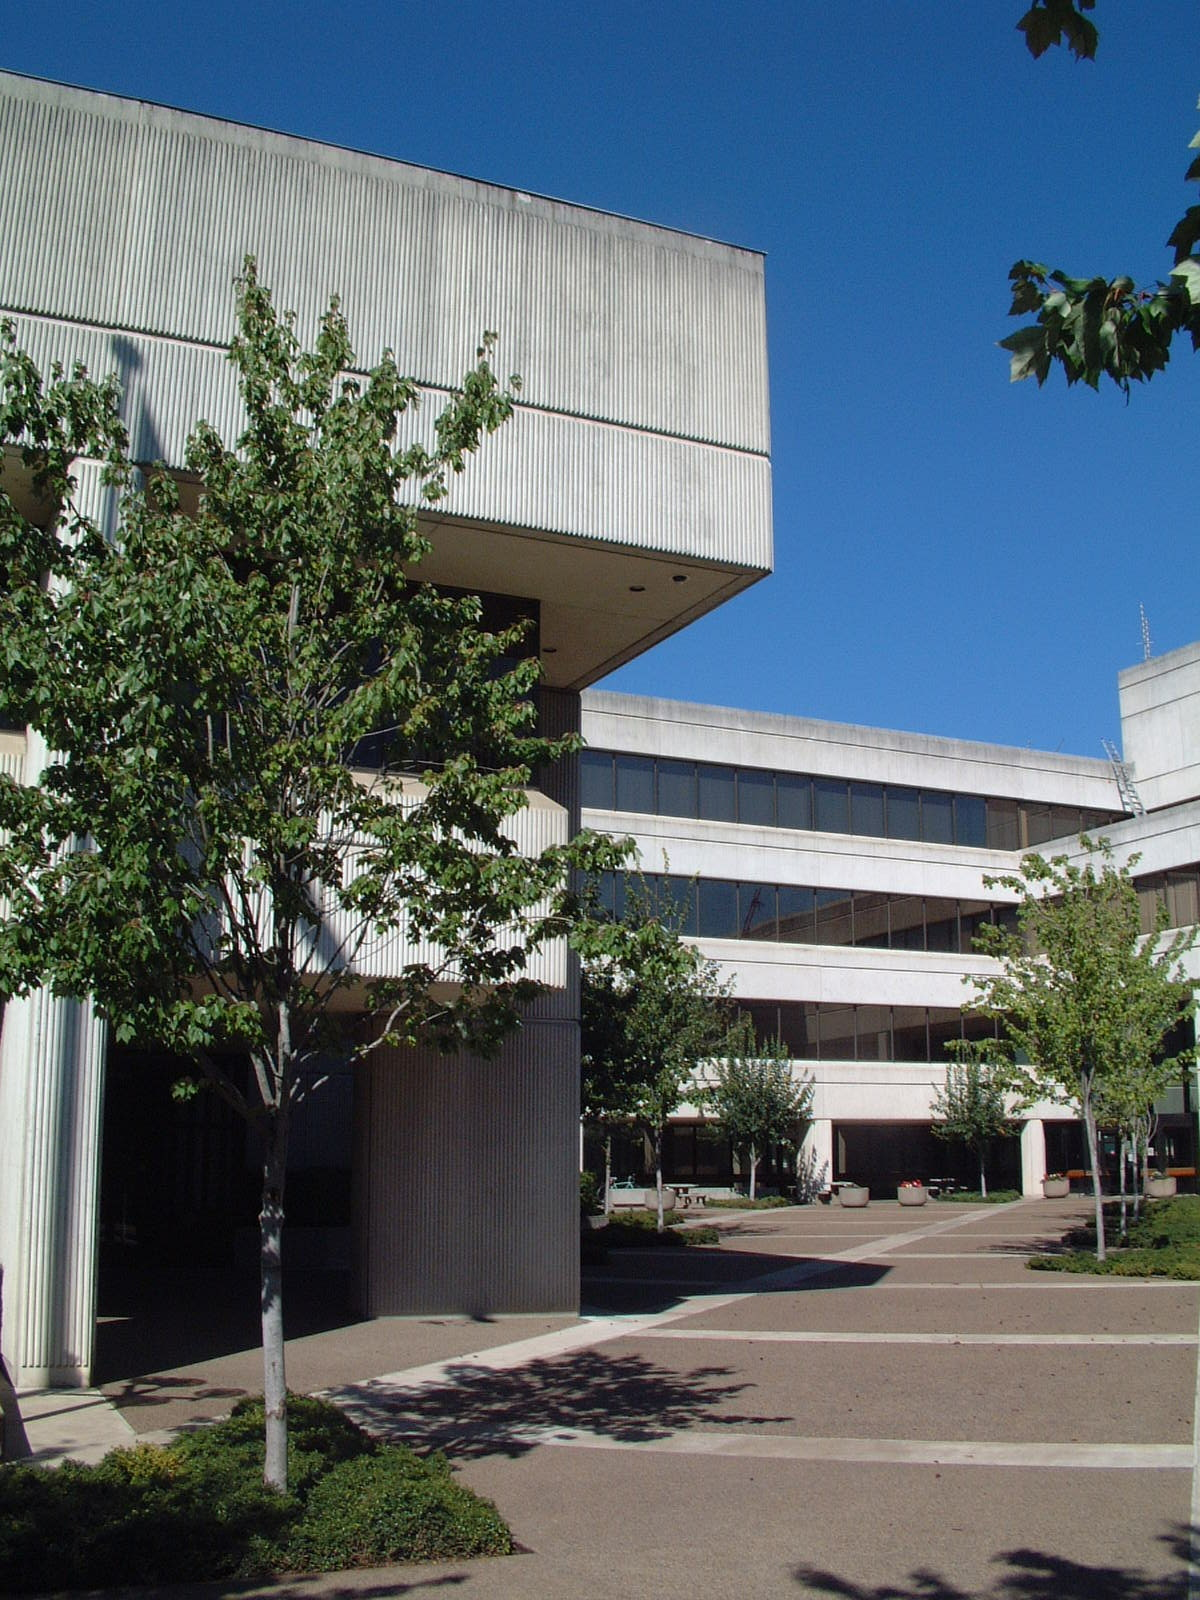 Eugene Federal Court House